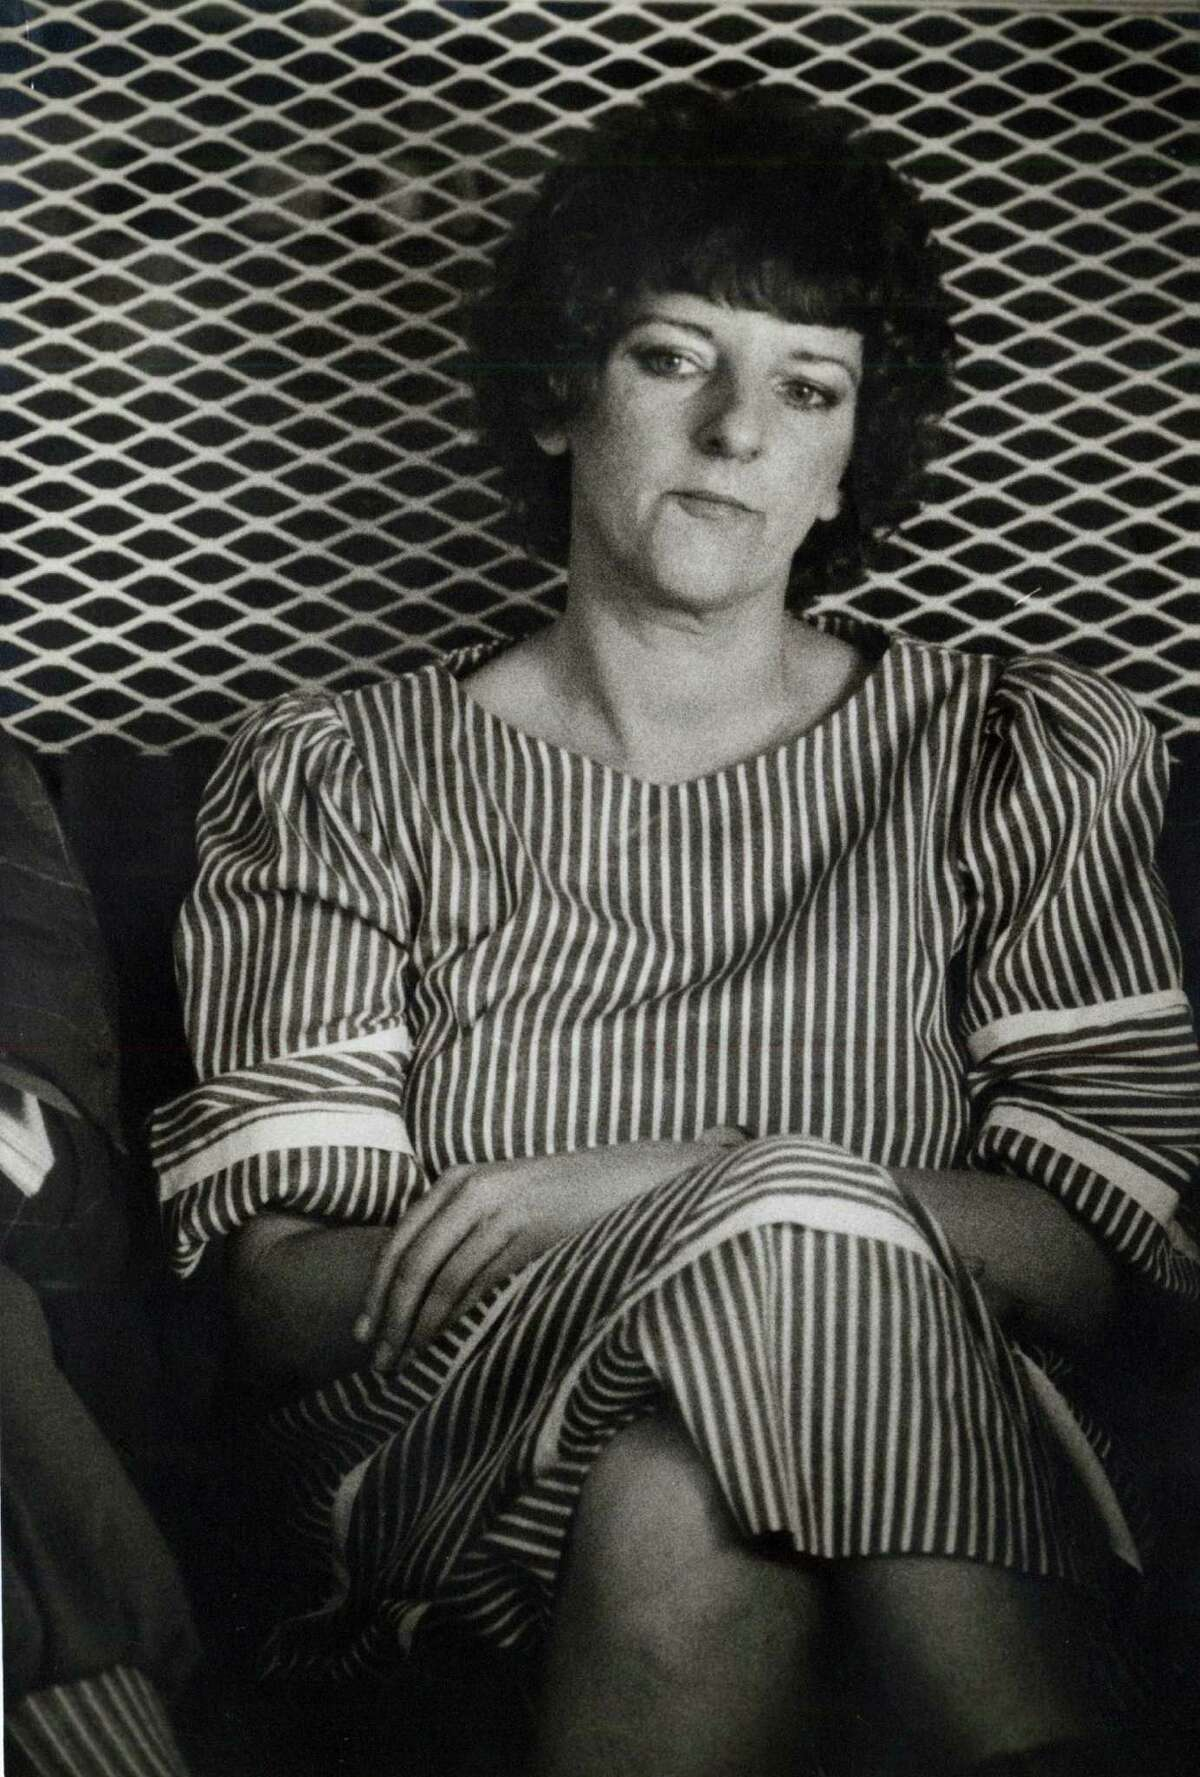 Genene Jones in 1984. The former pediatric nurse was suspected in the deaths of dozens of babies. She was convicted of murder in one death.